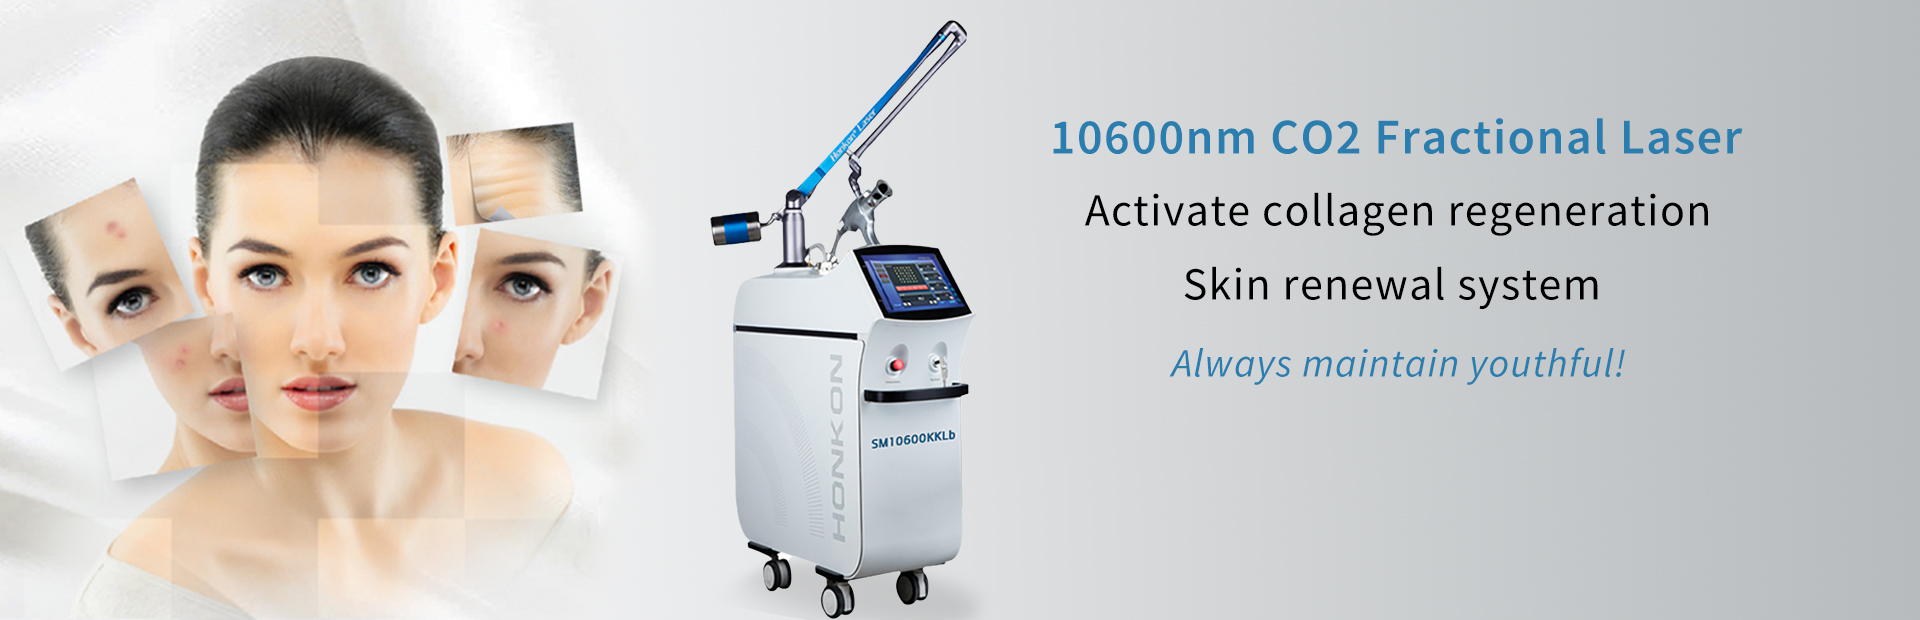 SM10600KKlb Vaginal tightening 10600nm CO2 Fractional laser stretch mark/scar removal  anti-wrinkle skin resurfacing machine